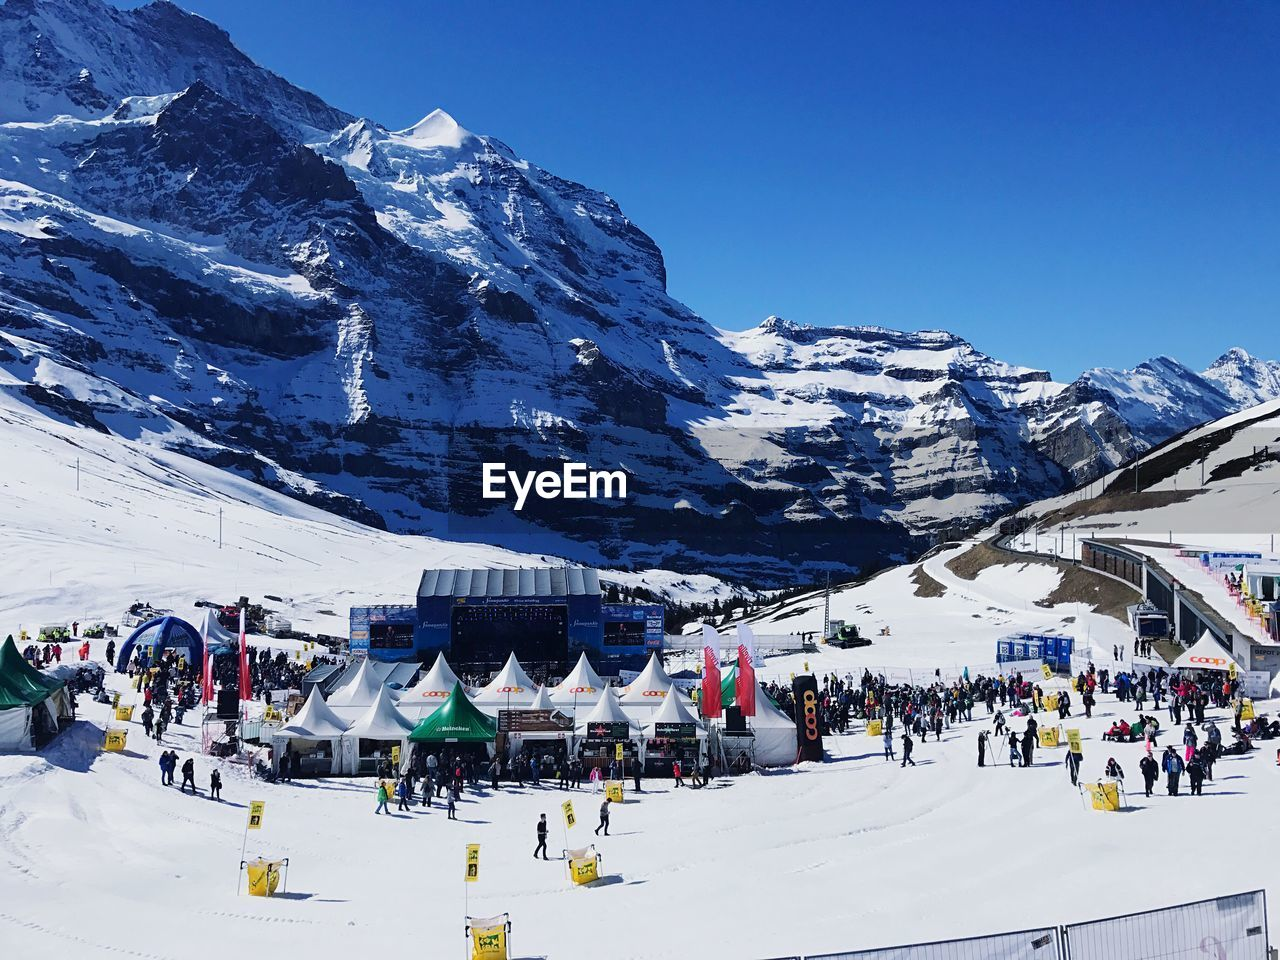 PANORAMIC VIEW OF PEOPLE ON SNOW COVERED MOUNTAIN